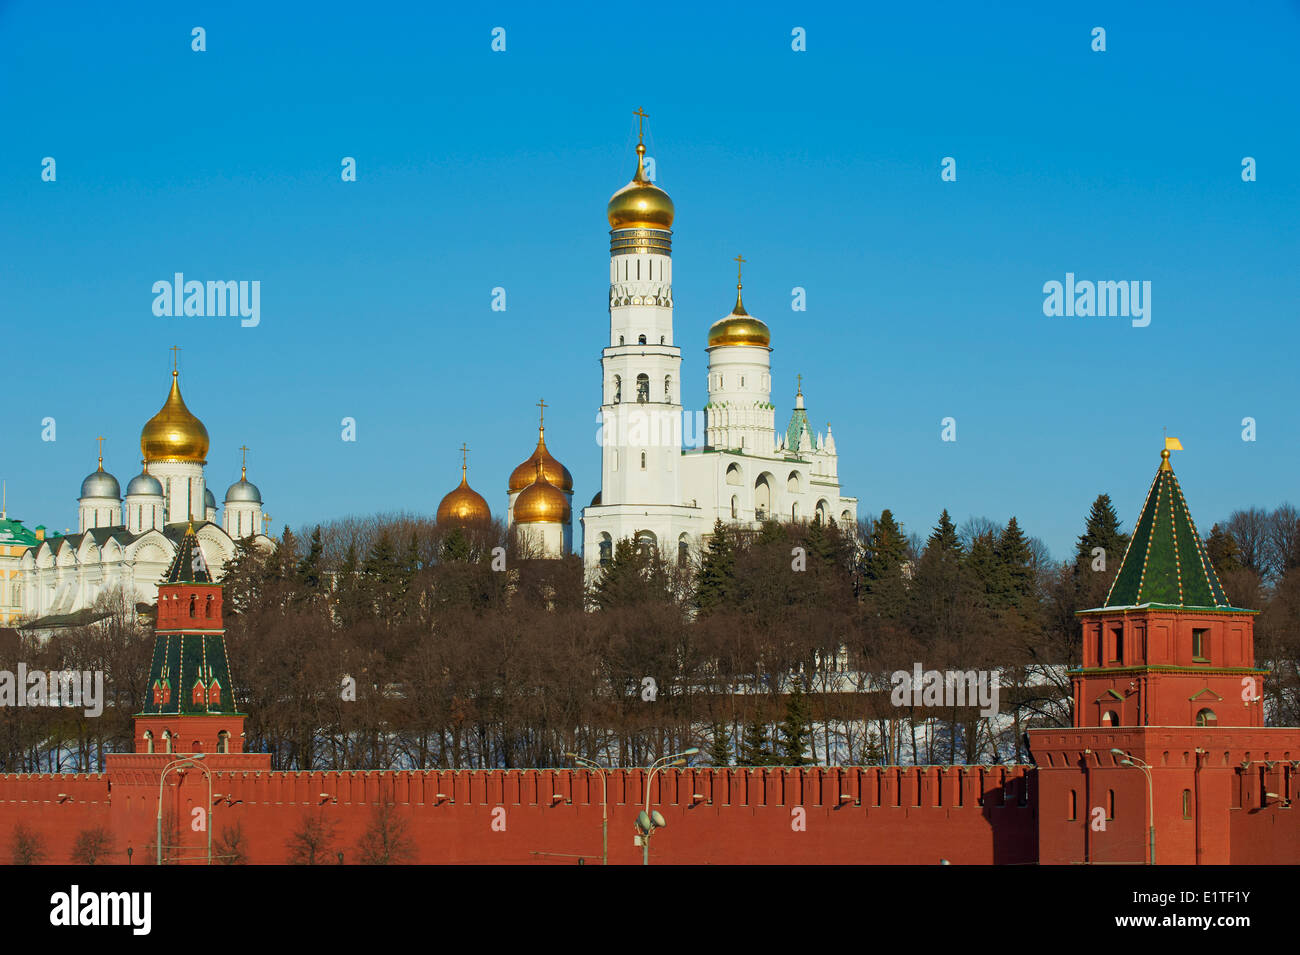 Russia, Moscow, Church of Archangel Michael behind Kremlin Wall - Stock Image